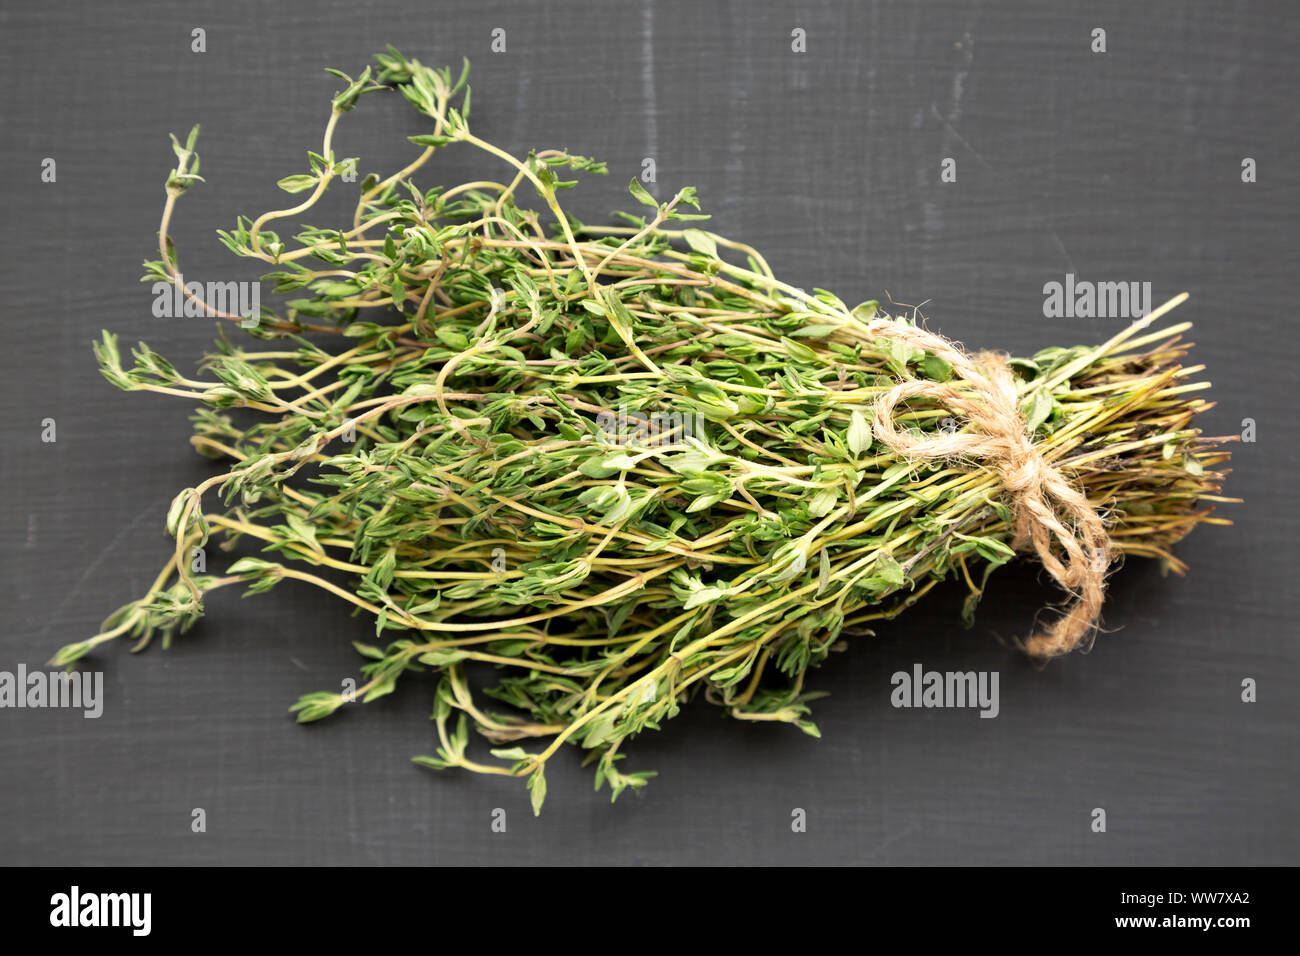 Raw organic fresh thyme on a black  background, side view. Closeup. Stock Photo